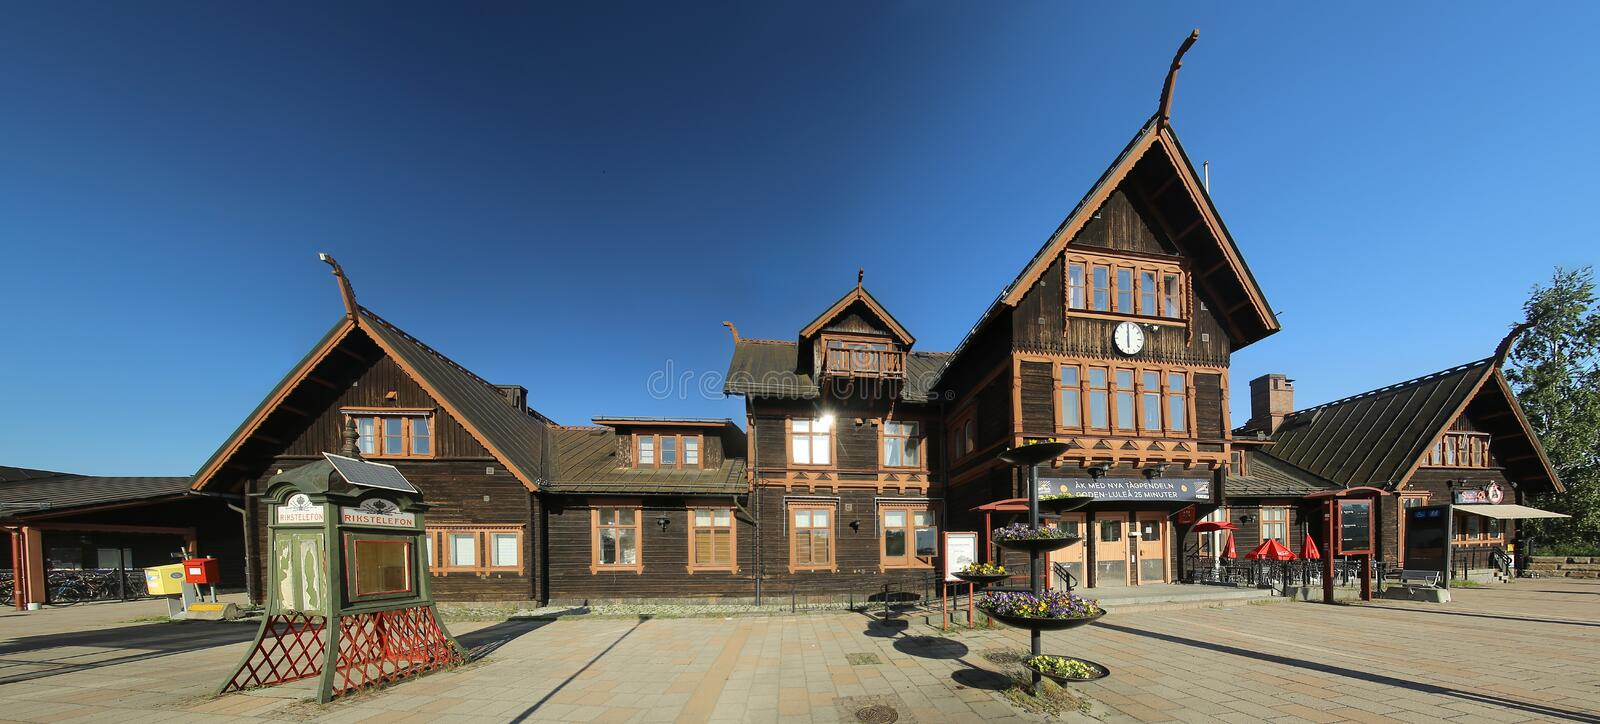 JUN 16 2019 - BODEN, SWEDEN : Front view of Bodens central station, an architectural monument built in 1893 royalty free stock photography